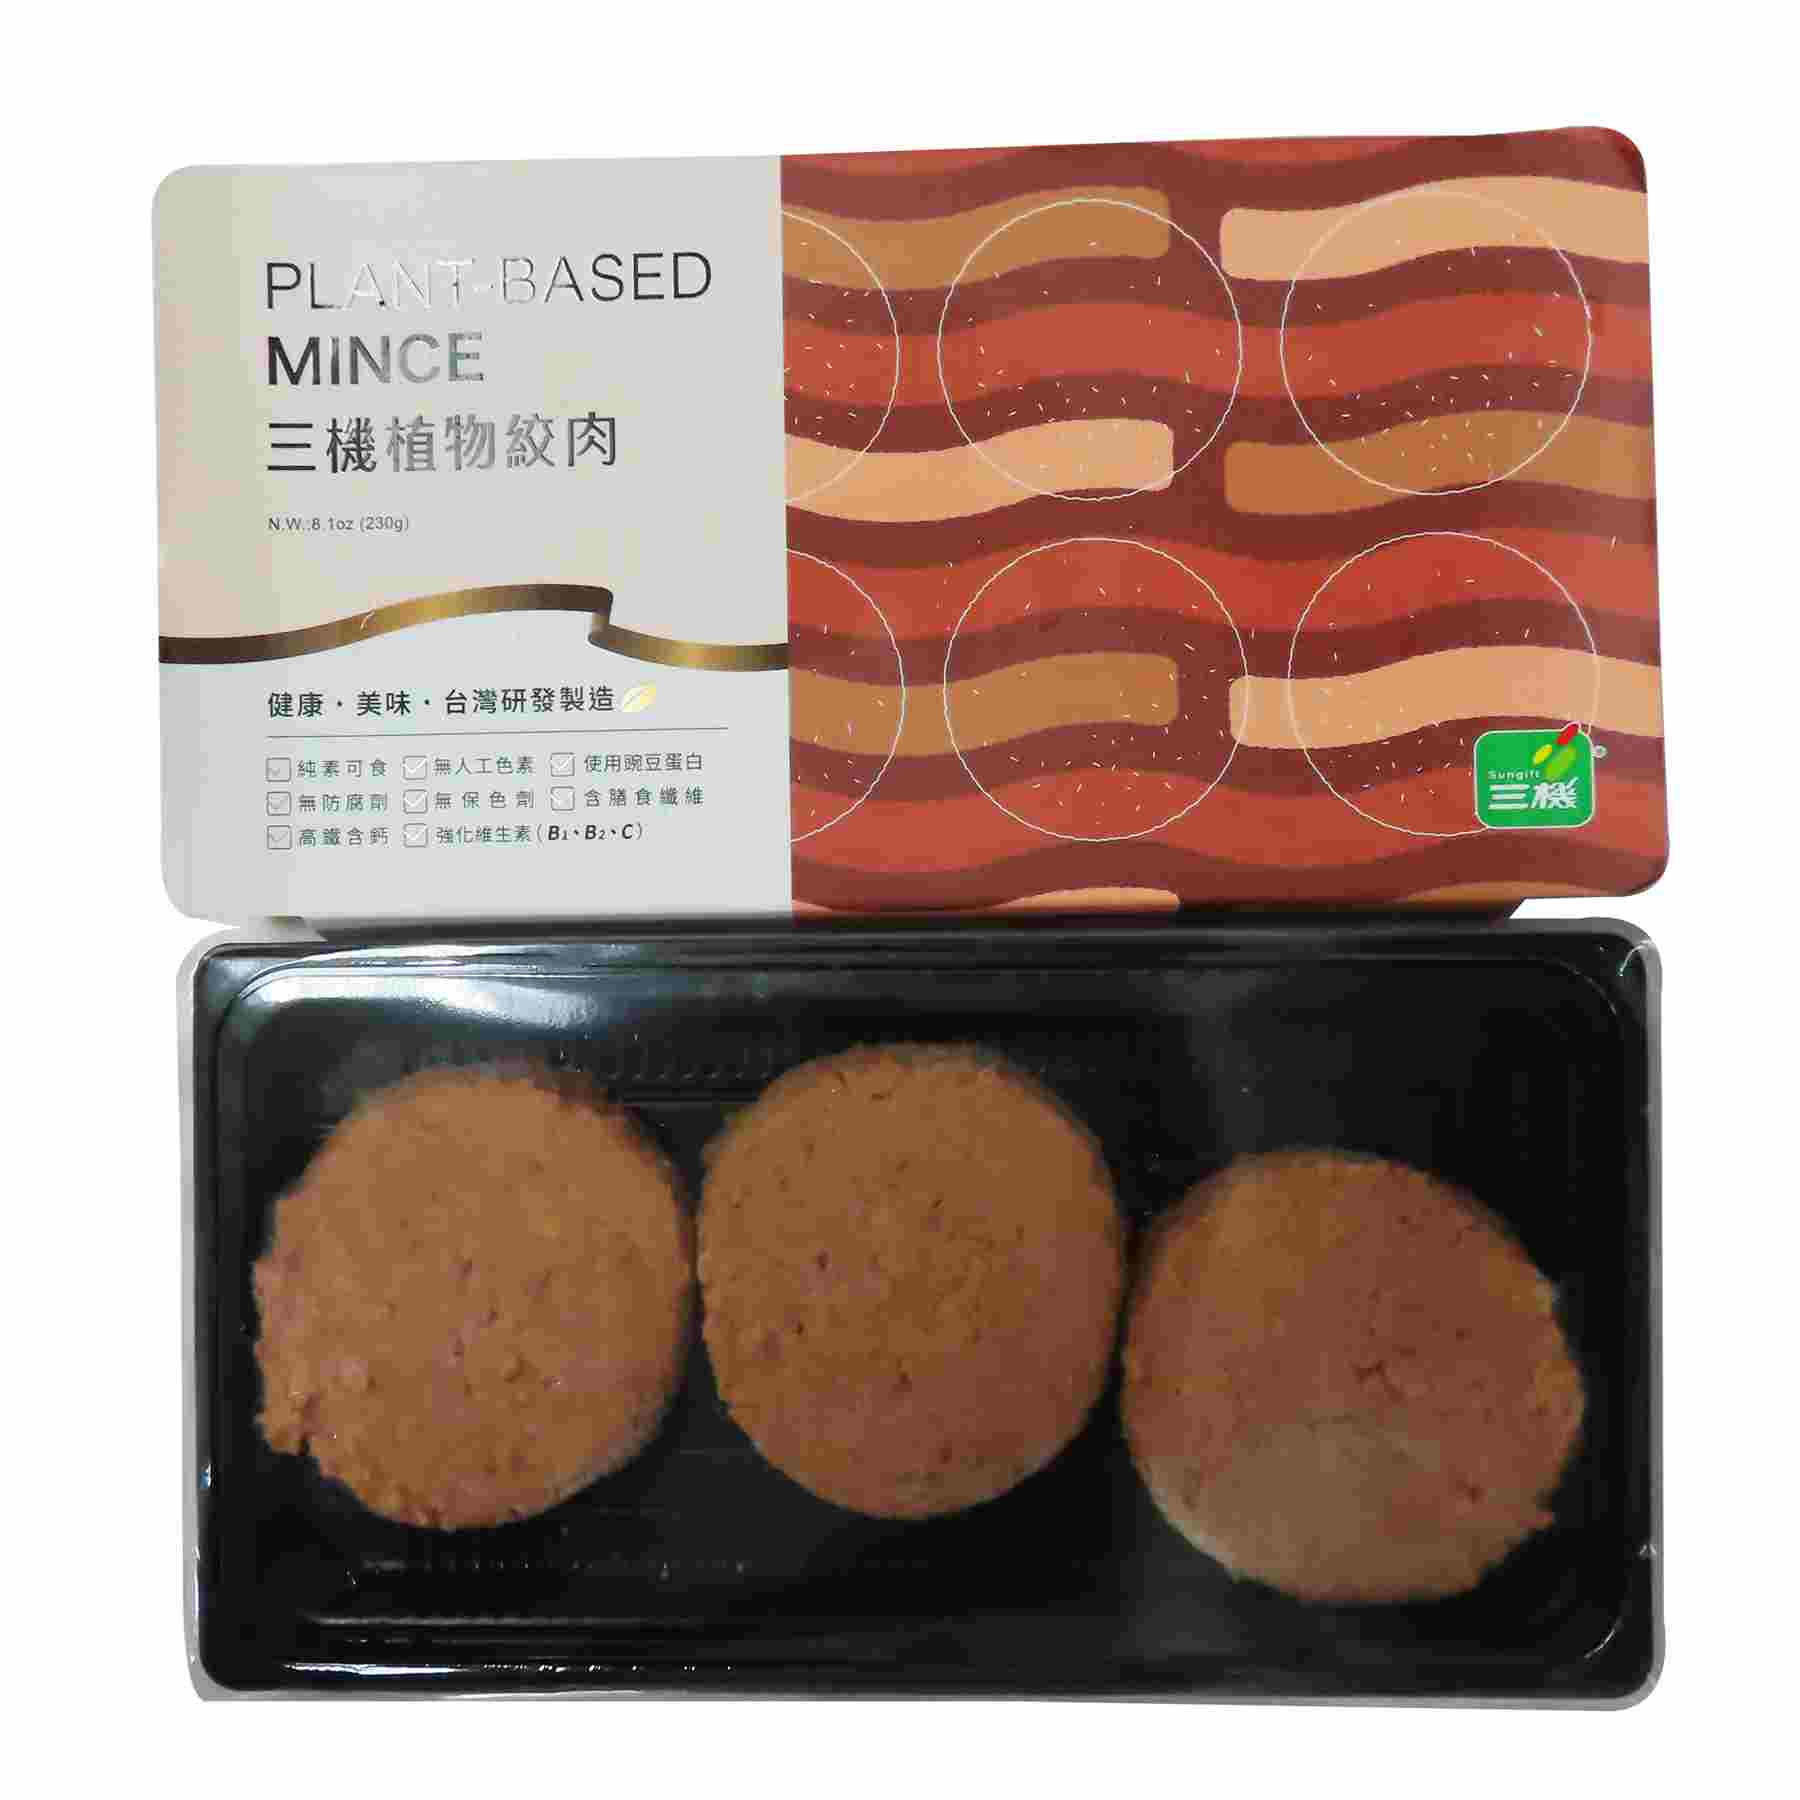 Image Sungift Plant - Based Mince 三机植物绞肉 230grams